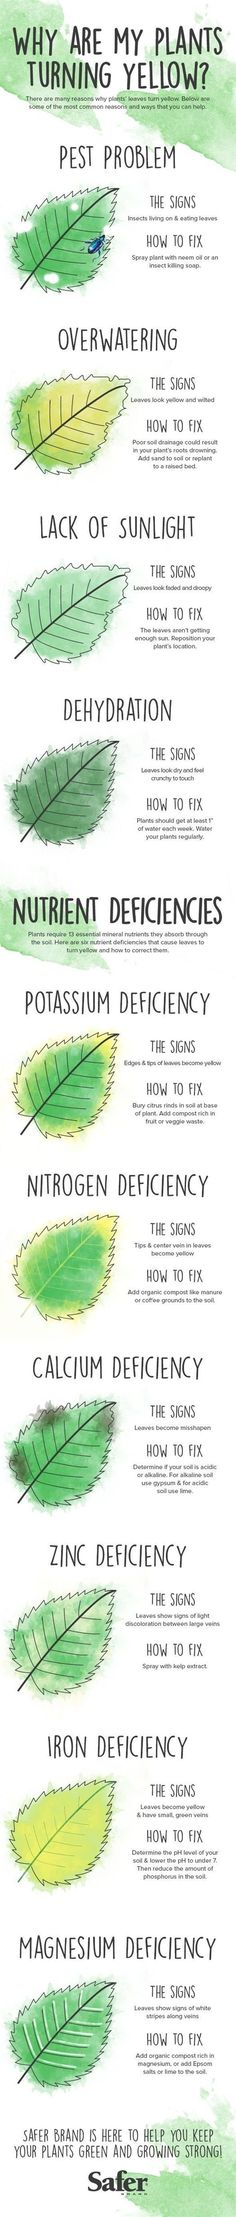 Why are my plants turning yellow? If your vegetable garden or house plants have gone from verdant to flavescent, it could be a sign of health issues like too much water or too few nutrients. A new infographic offers tips for getting to the root of the problem. #GardeningTips #growvegetables